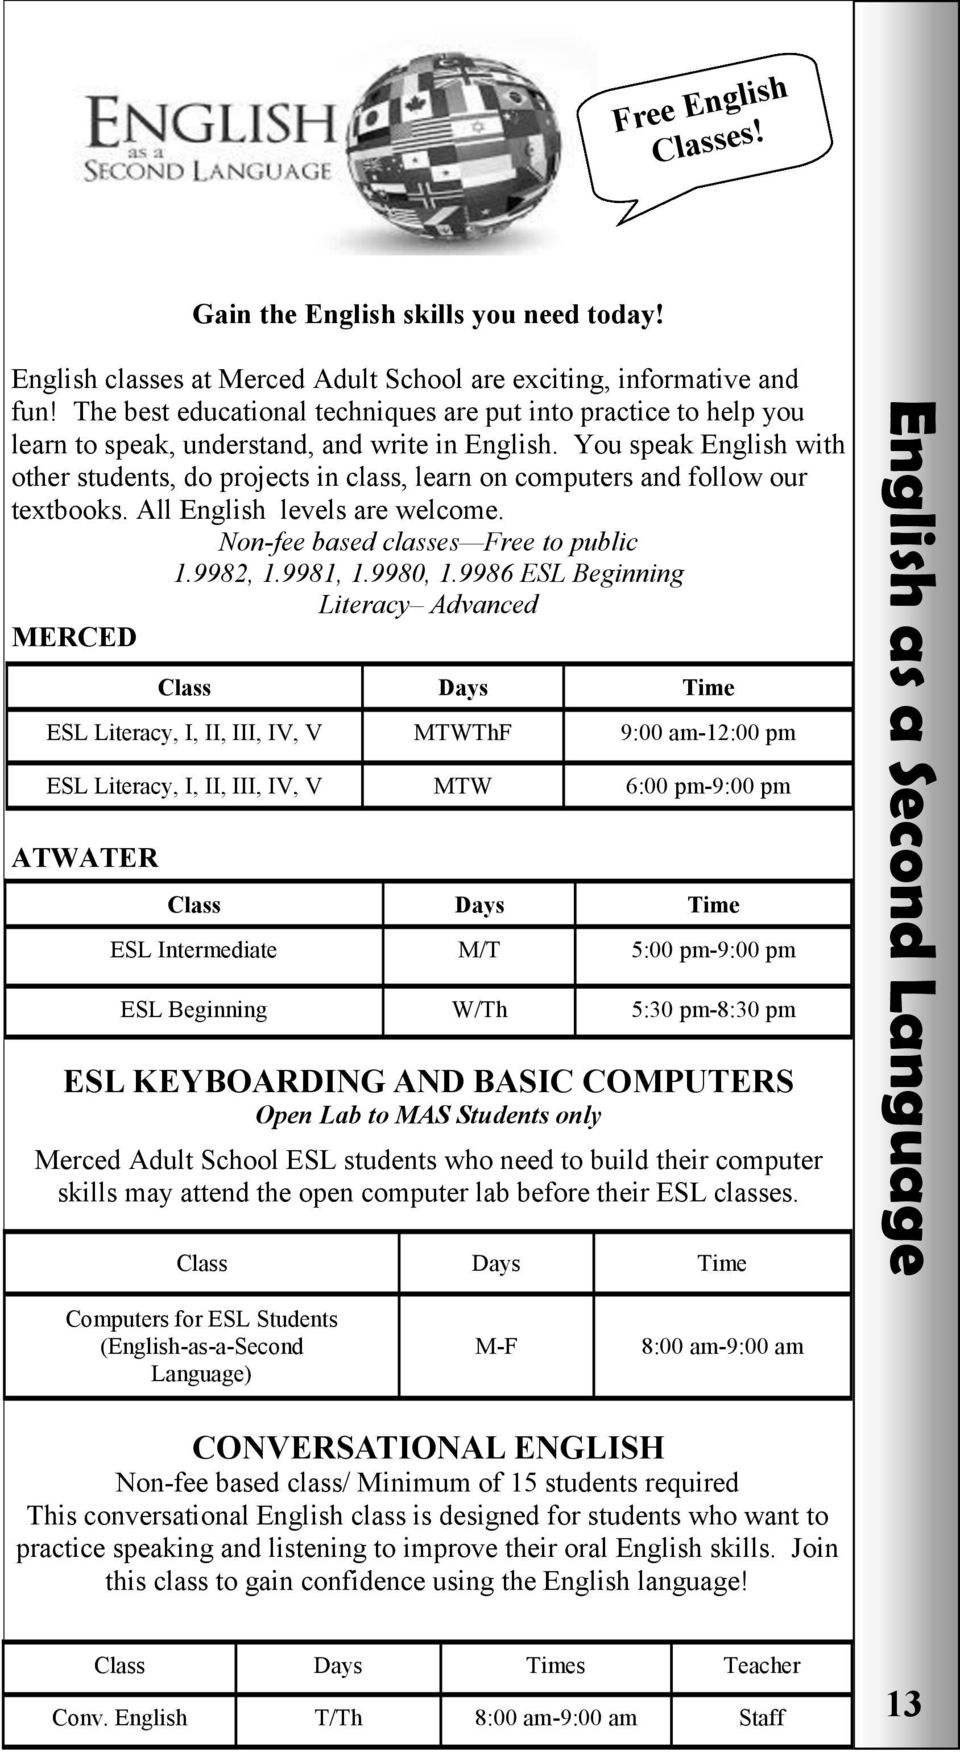 You speak English with other students, do projects in class, learn on computers and follow our textbooks. All English levels are welcome. Non-fee based classes Free to public 1.9982, 1.9981, 1.